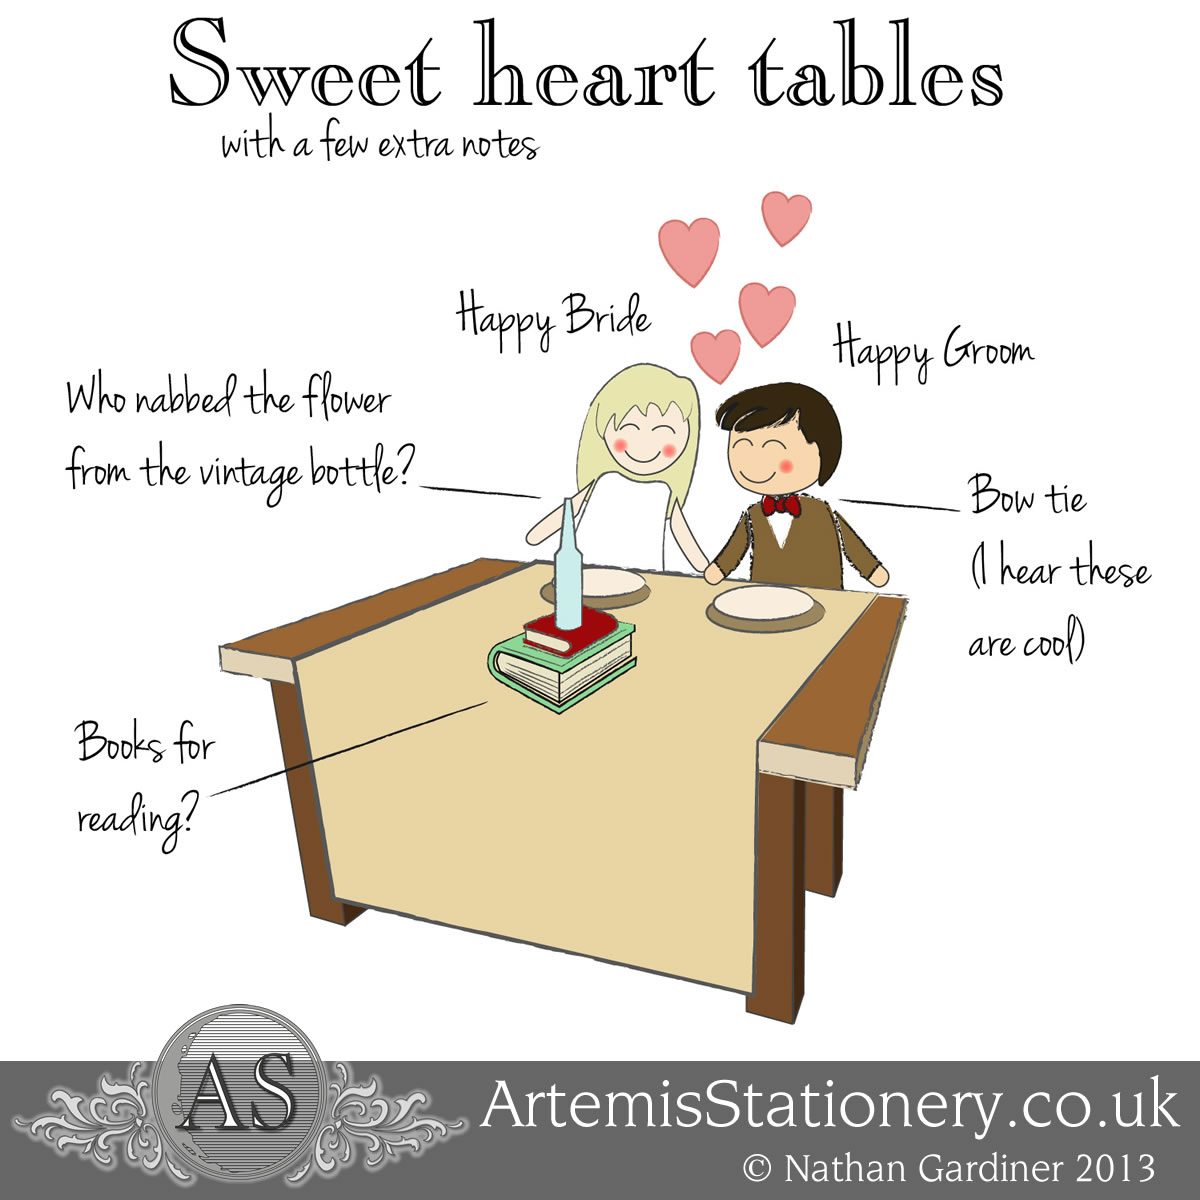 The good side of sweet heart tables